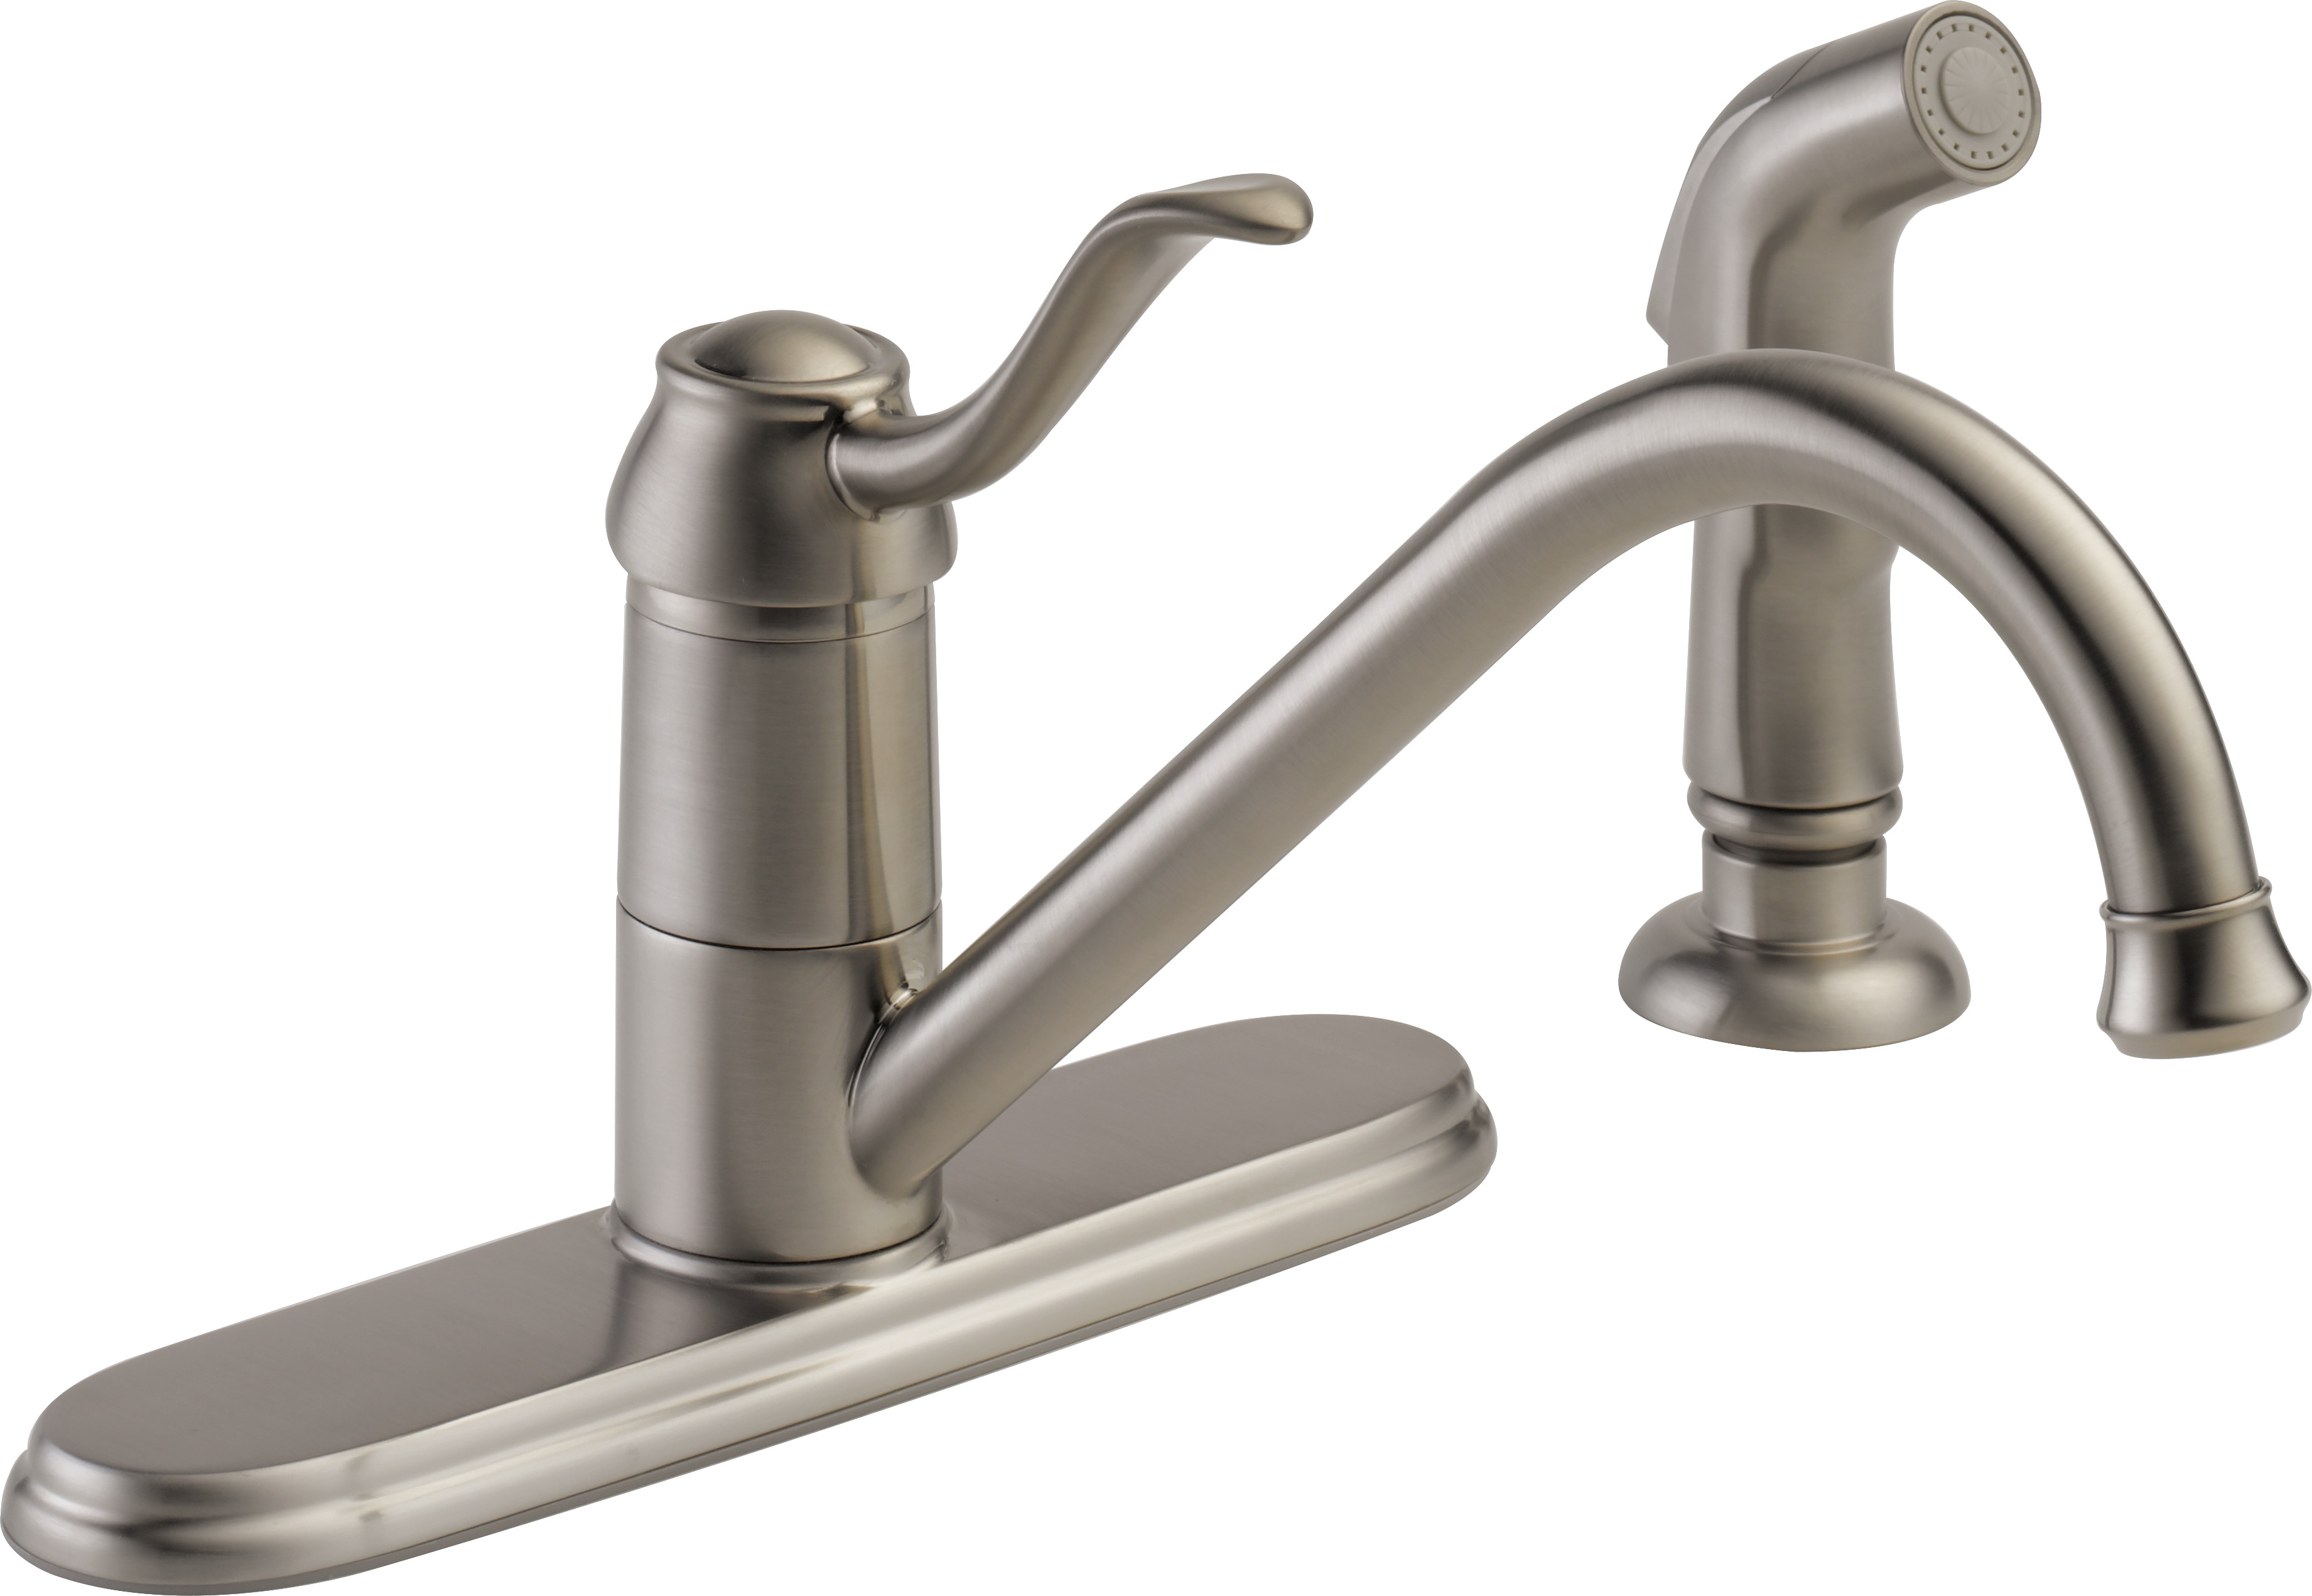 peerless choice single handle kitchen faucet with side sprayer in stainless